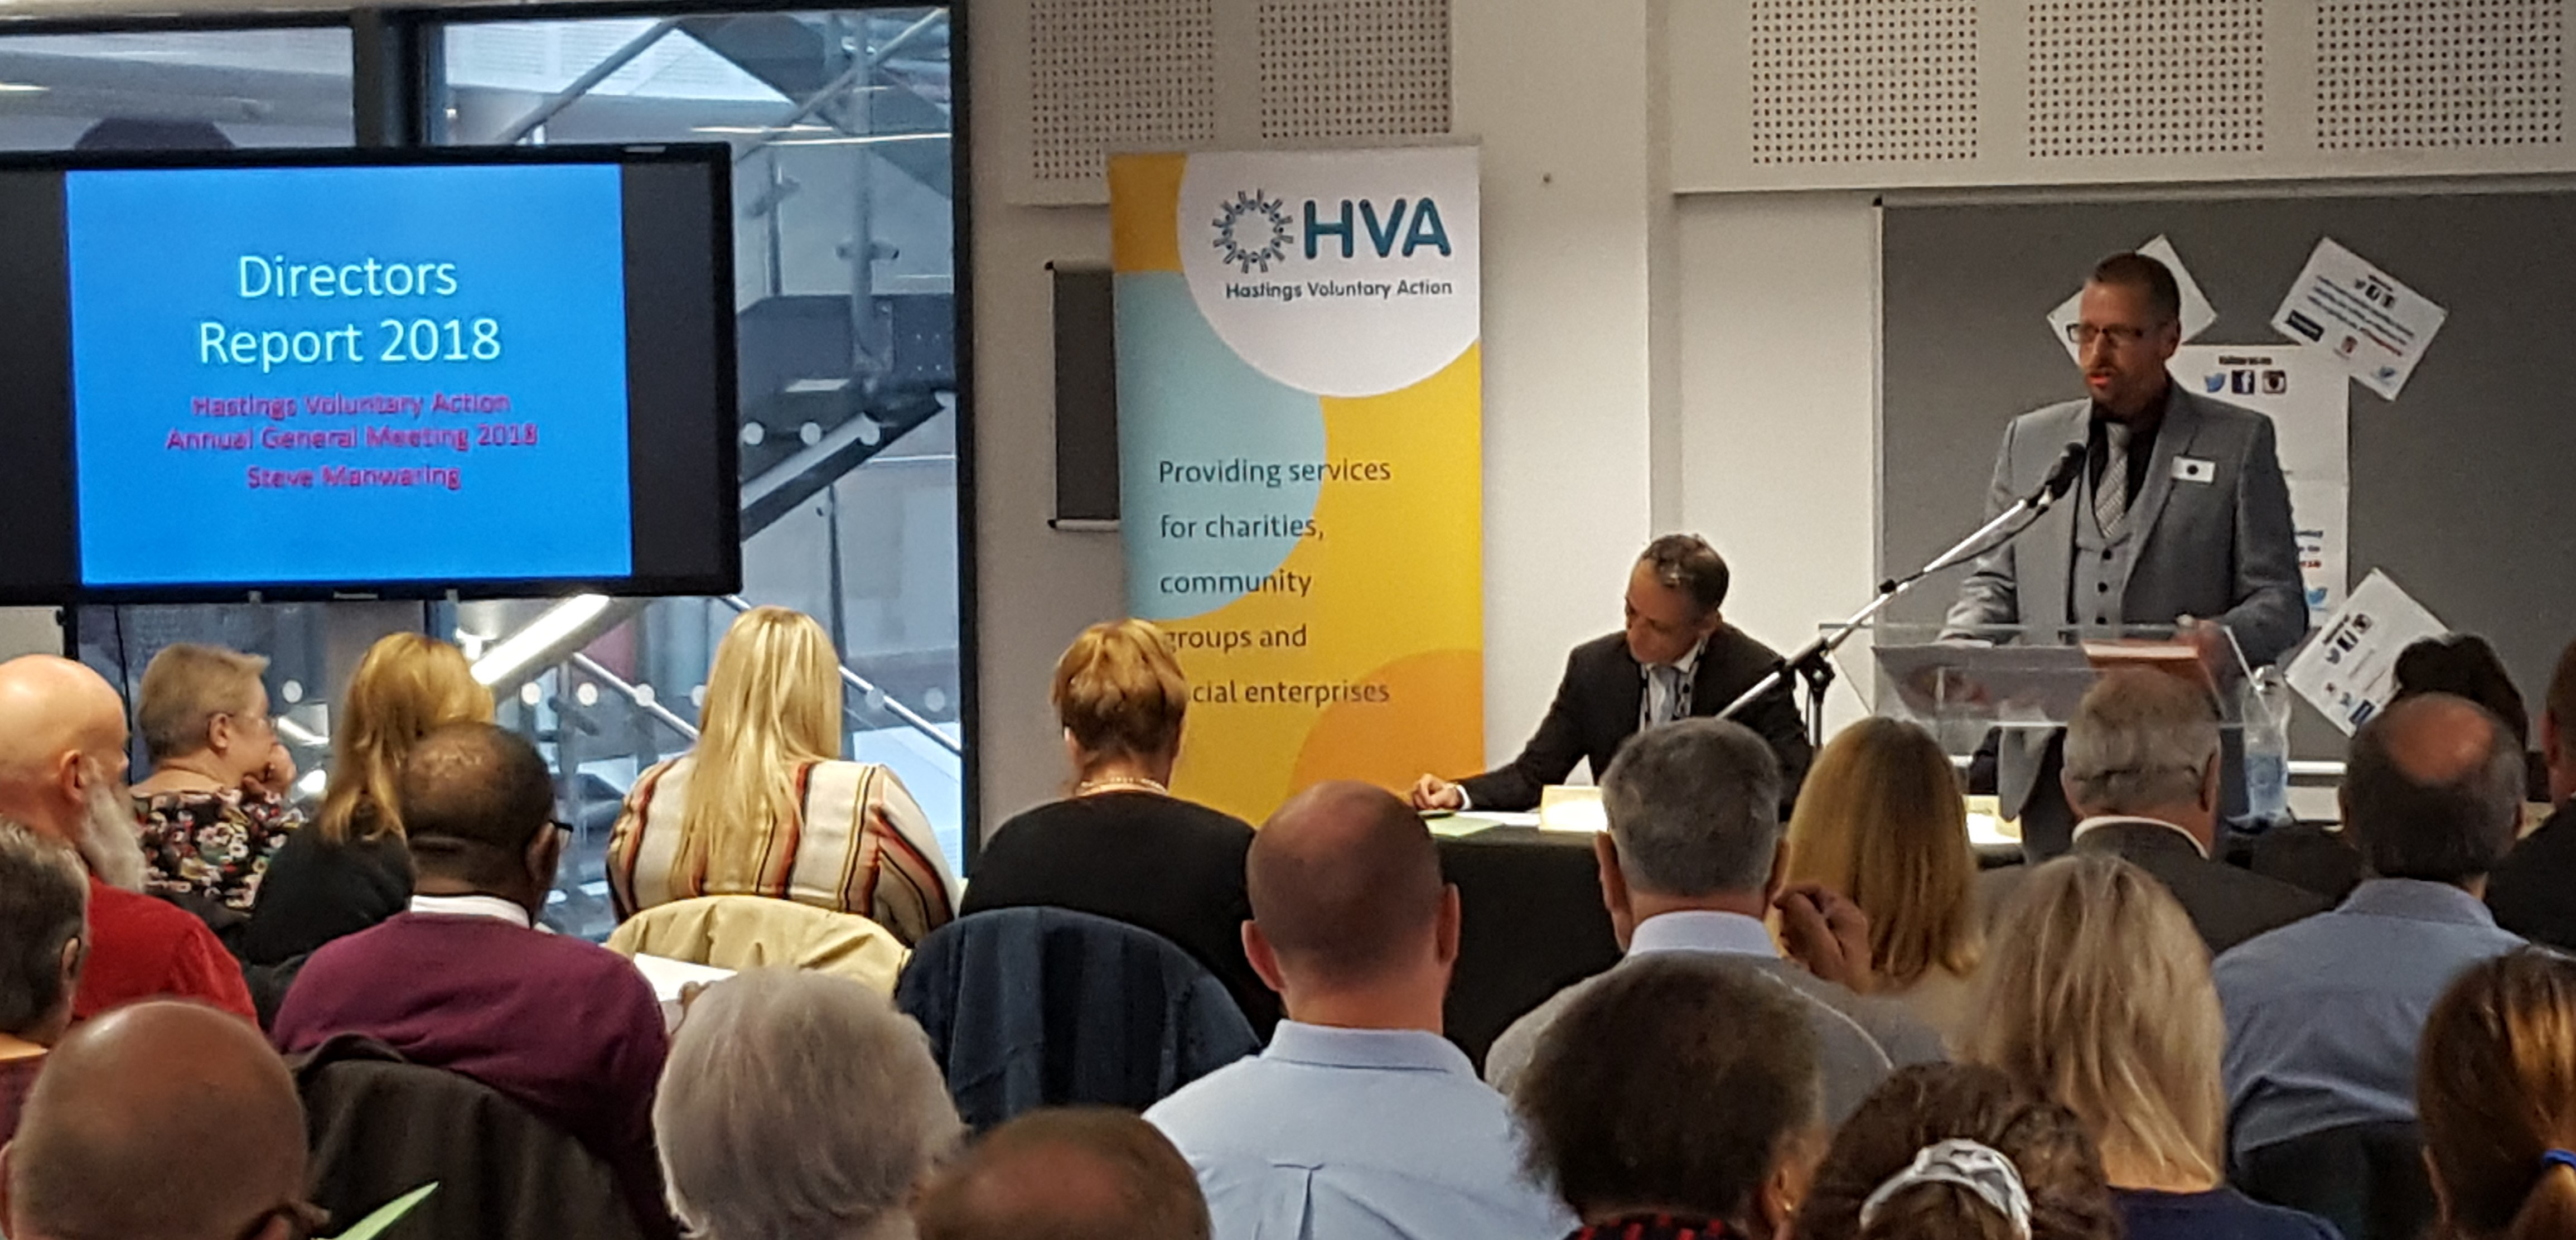 Hvas Agm Conference 2019 Hastings Voluntary Action